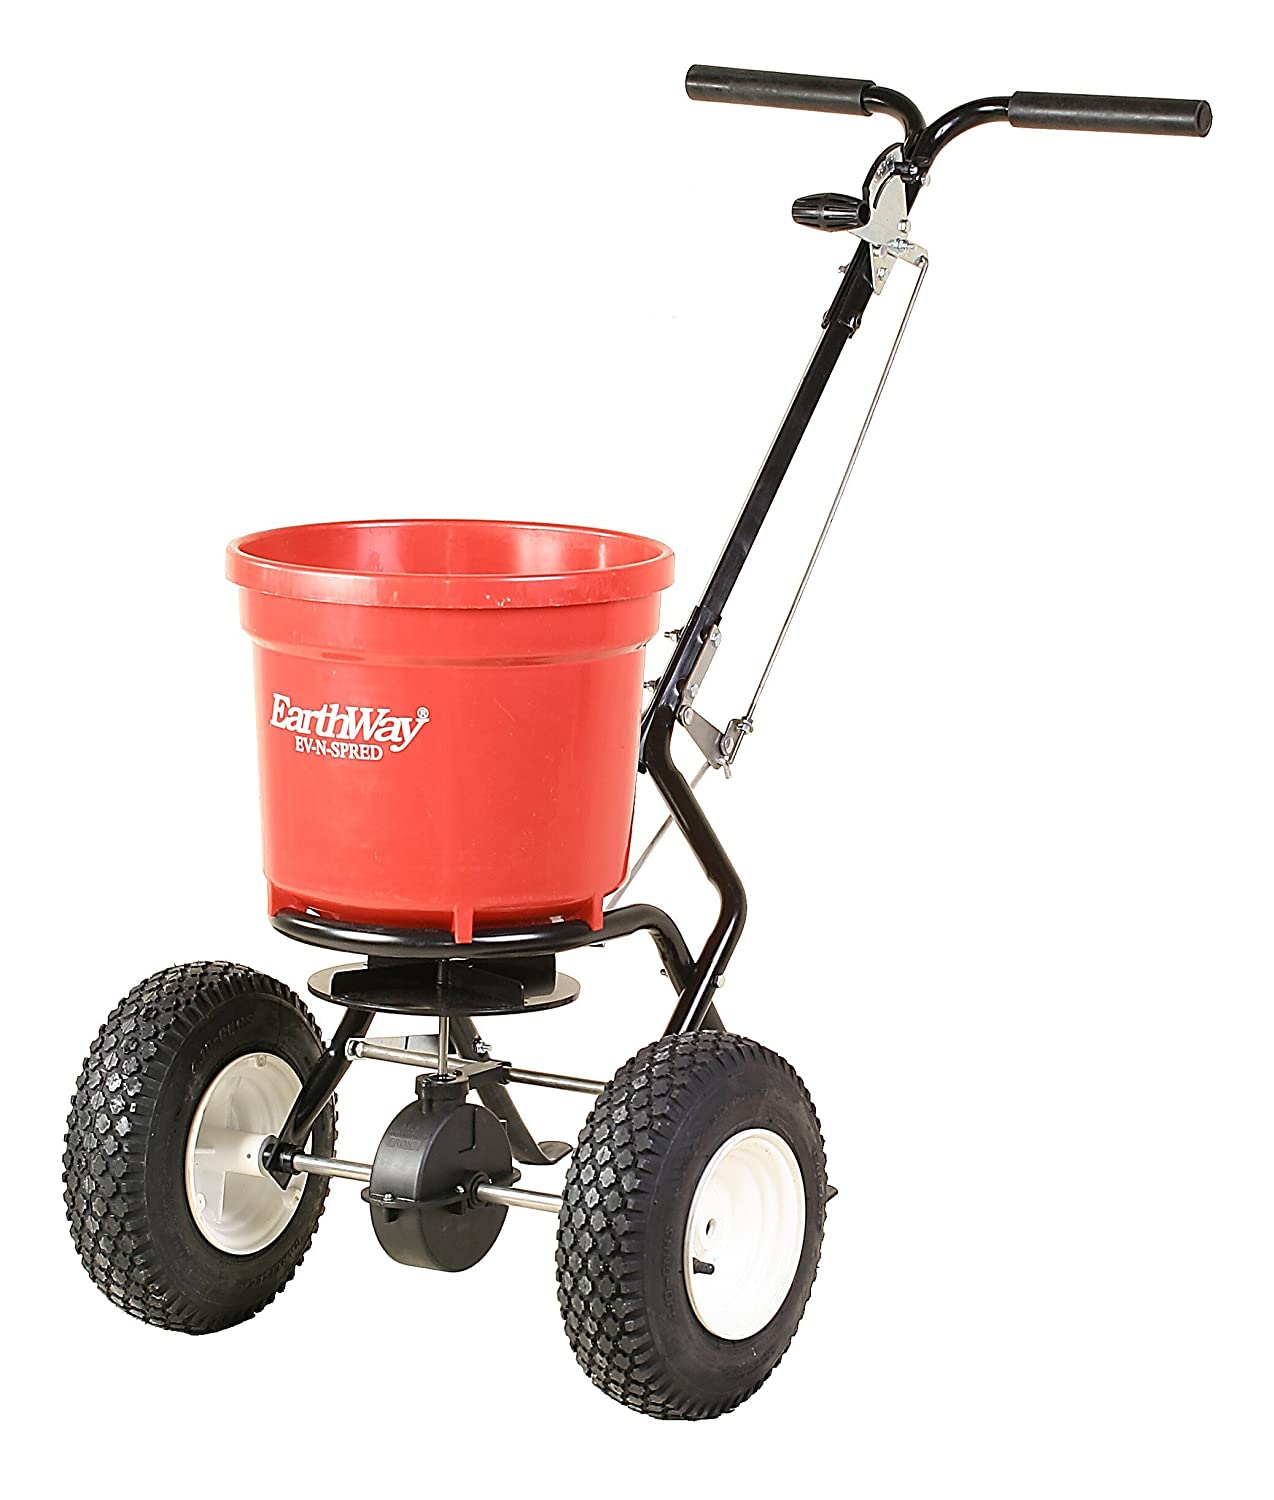 Best Commercial broadcast fertiliser spreader